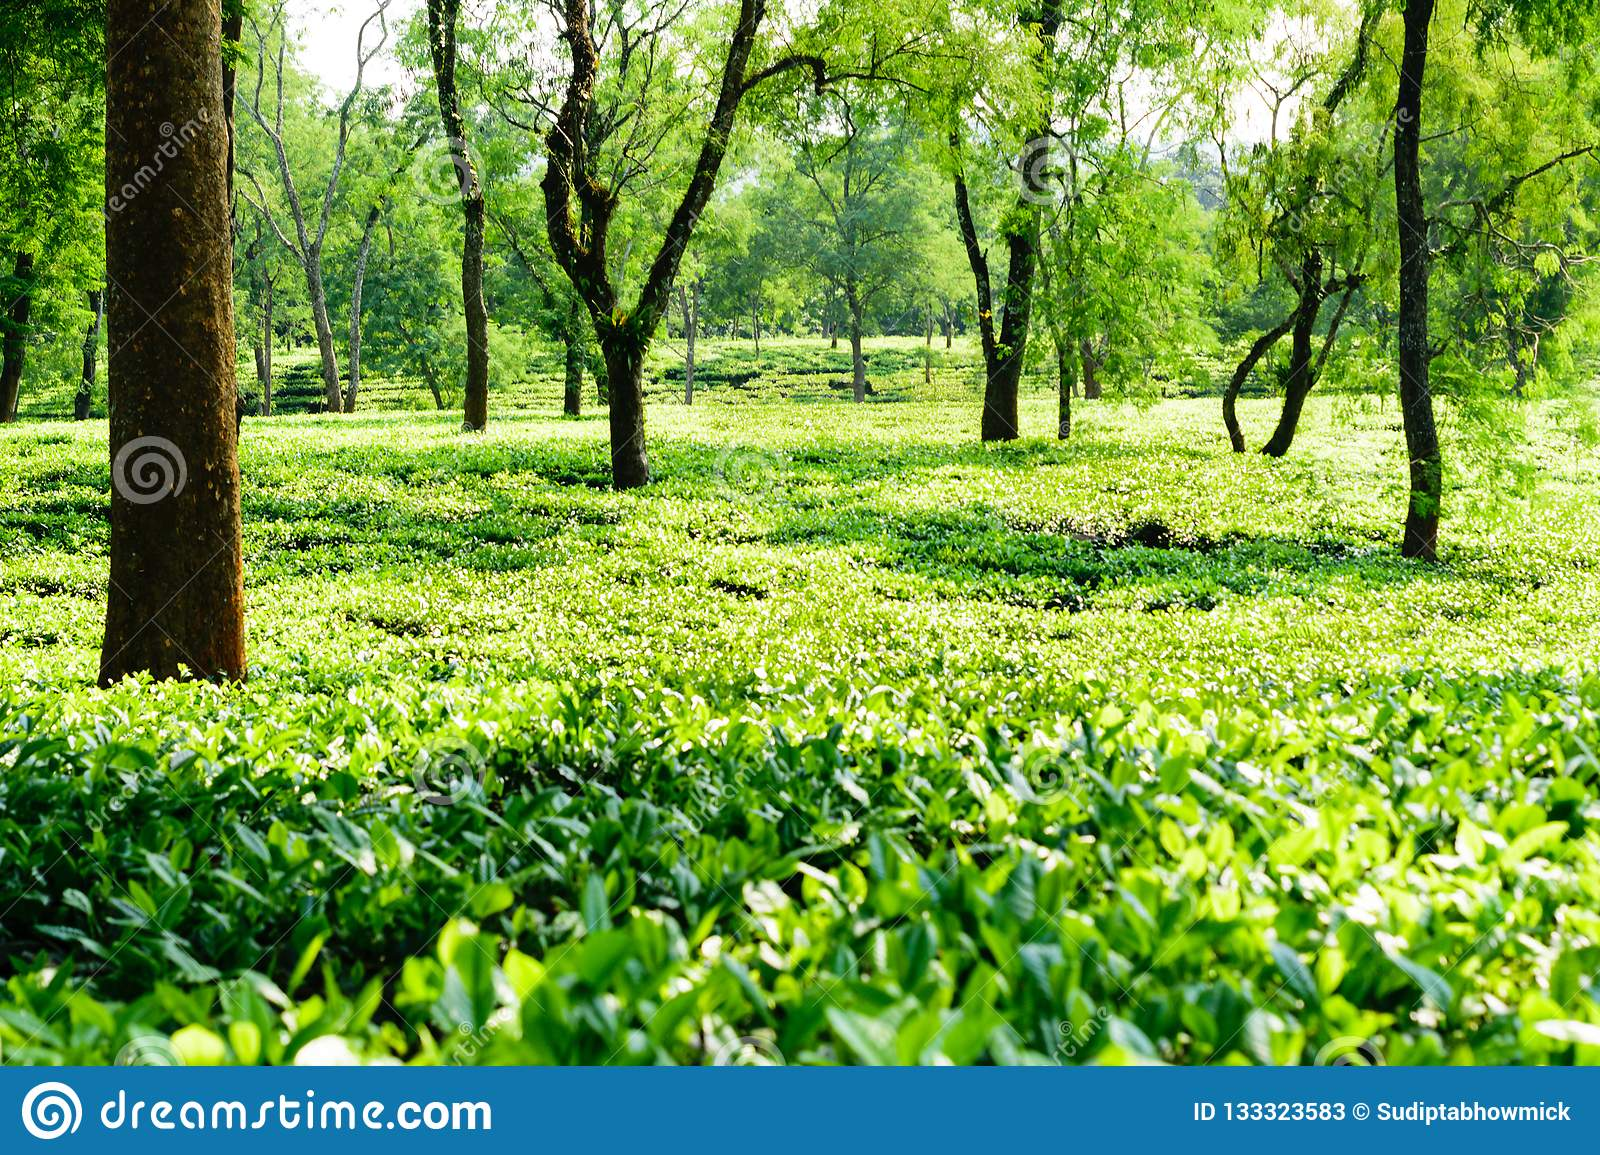 Tea Plantation In Asam India Stock Image - Image of branch ...